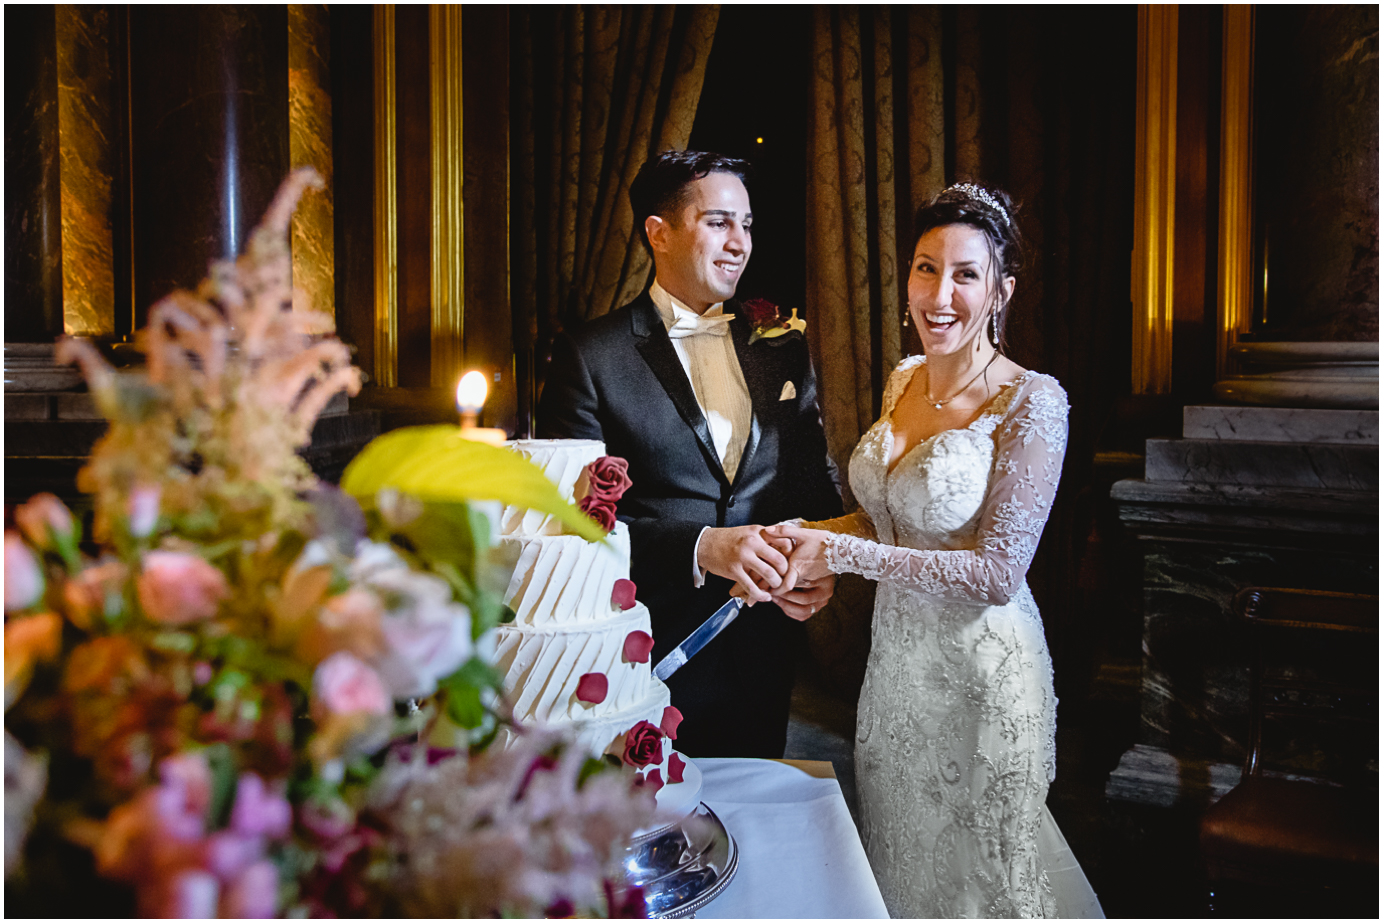 iranian wedding photographer 209 - Drapers Hall London Wedding Photographer